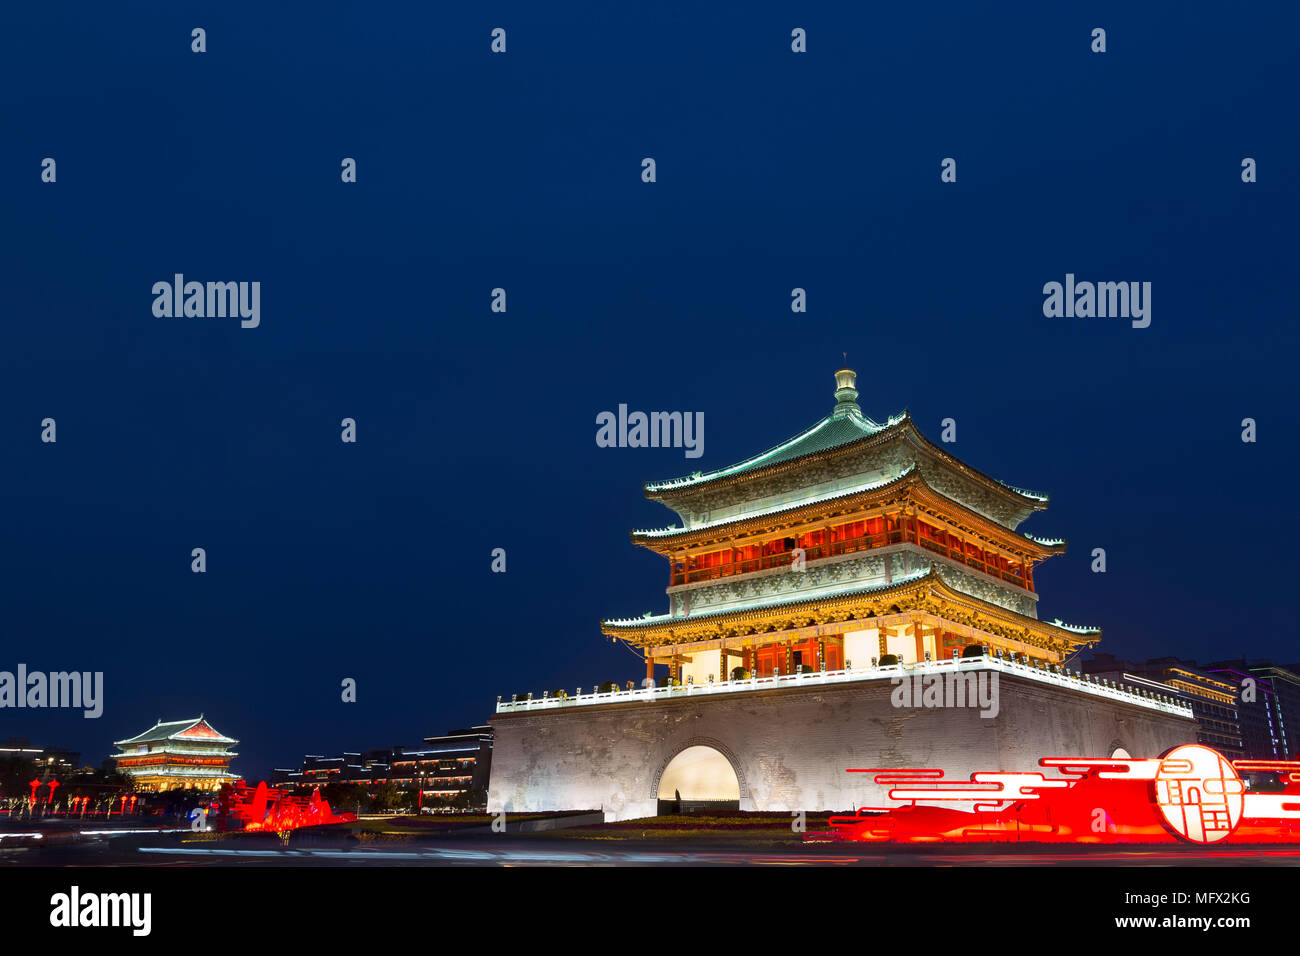 Xian Bell & Drum Tower at dusk in China Stock Photo